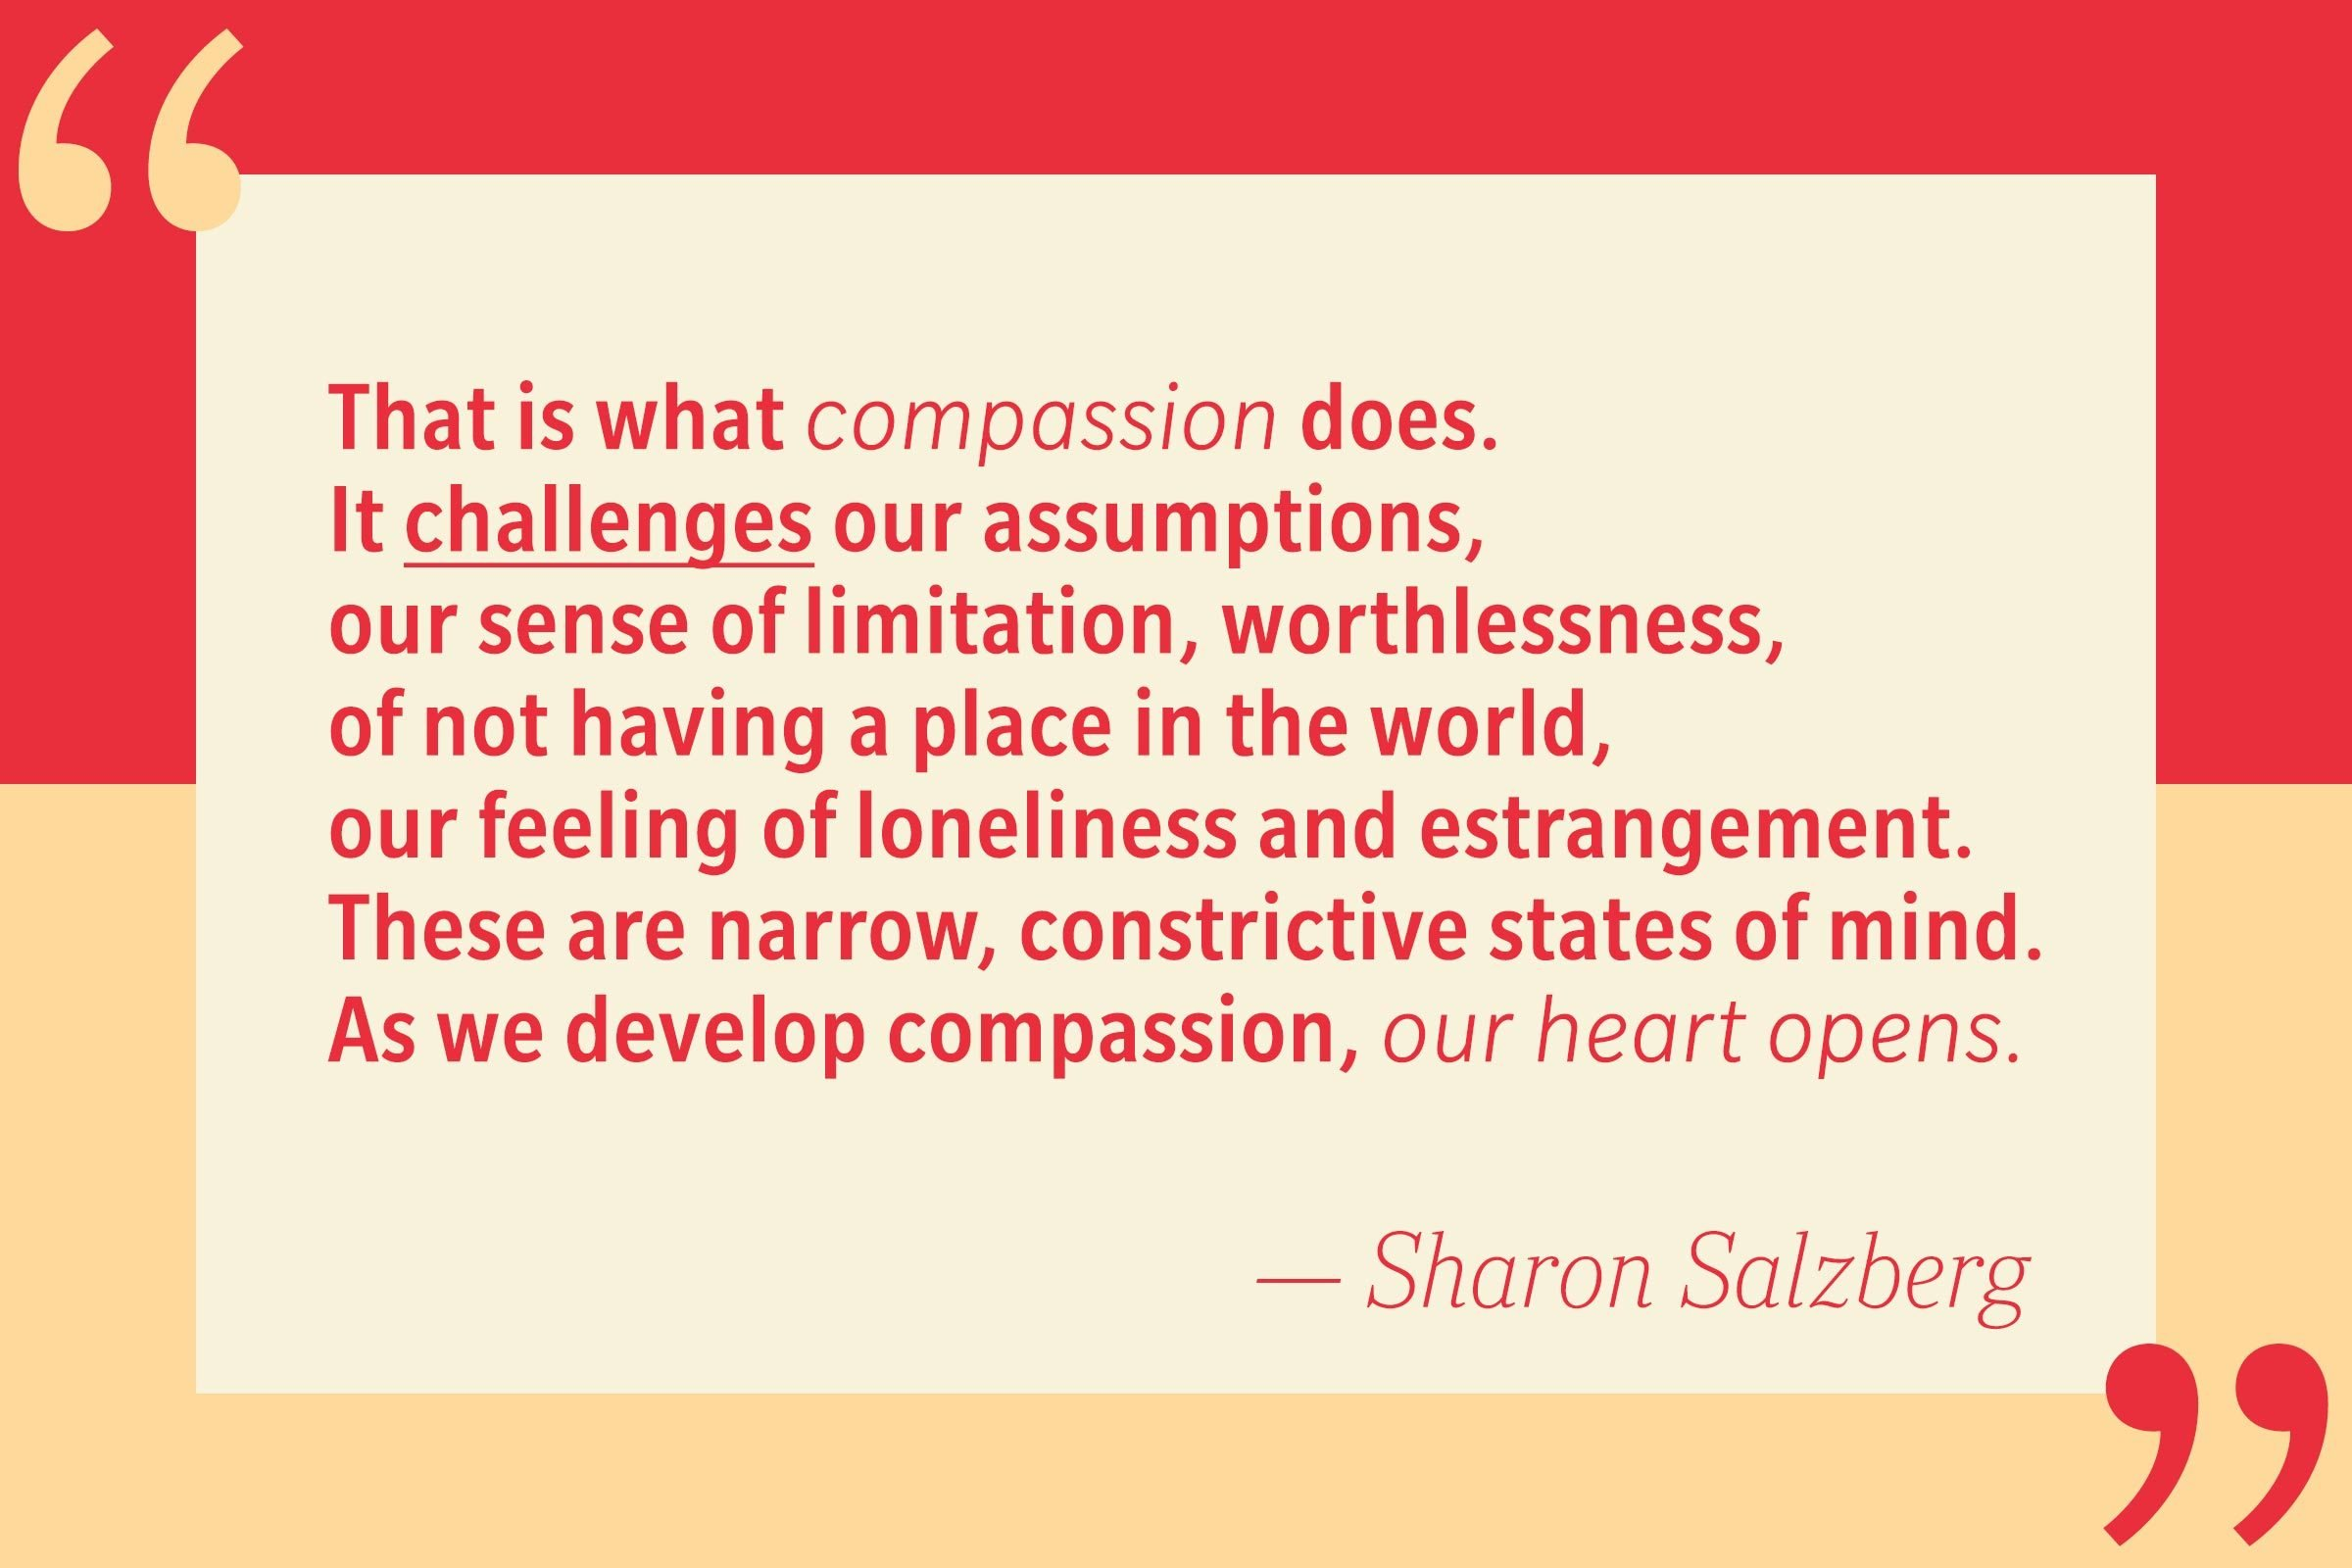 That is what compassion does. It challenges our assumptions, our sense of self-limitation, worthlessness, of not having a place in the world, our feelings of loneliness and estrangement. These are narrow, constrictive states of mind. As we develop compassion, our hearts open. — Sharon Salzberg